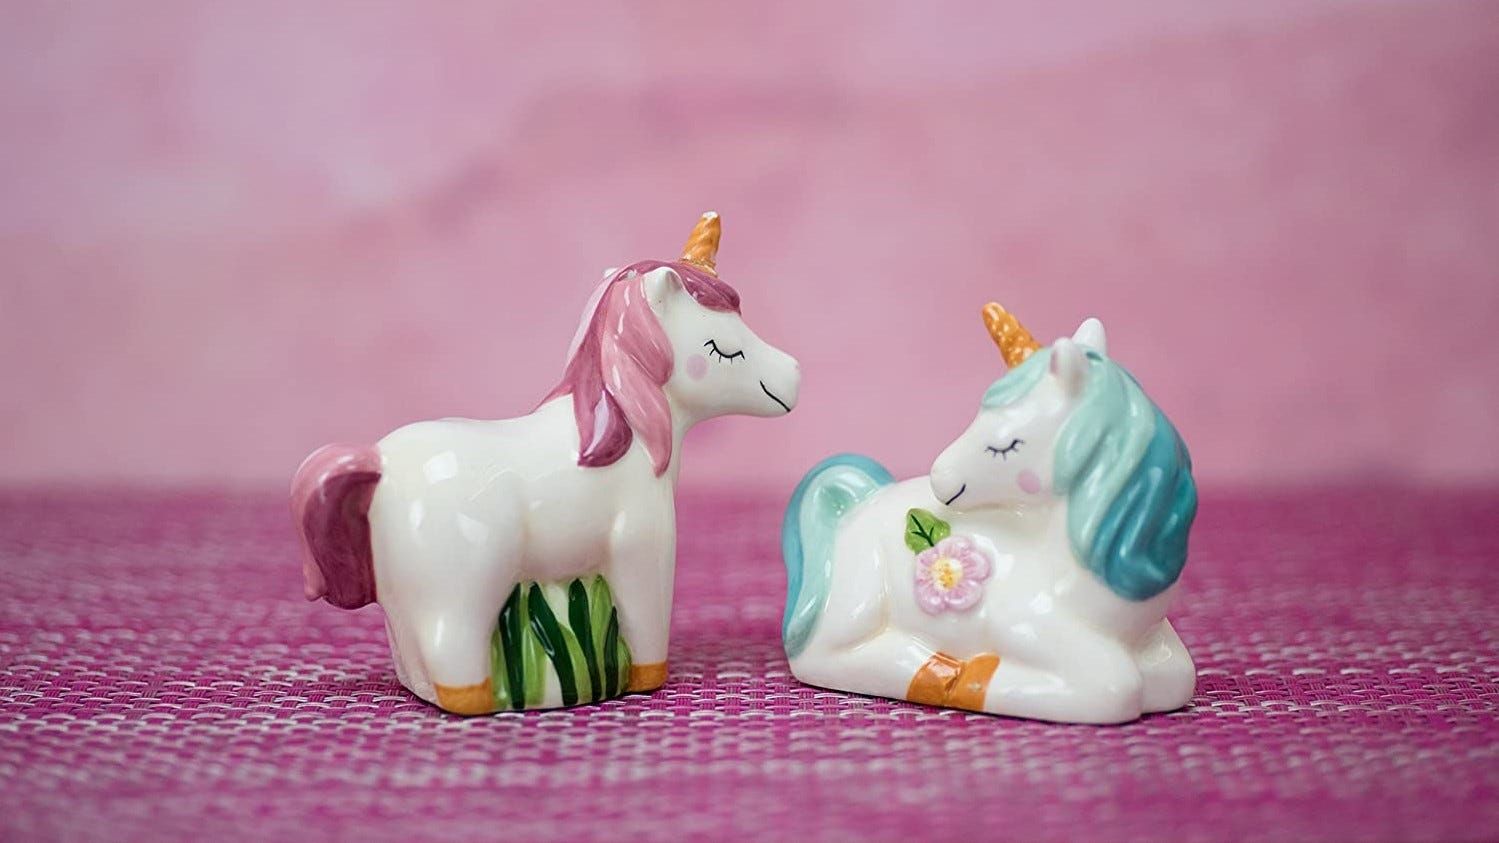 Unicorn salt and pepper shakers sitting on a table.